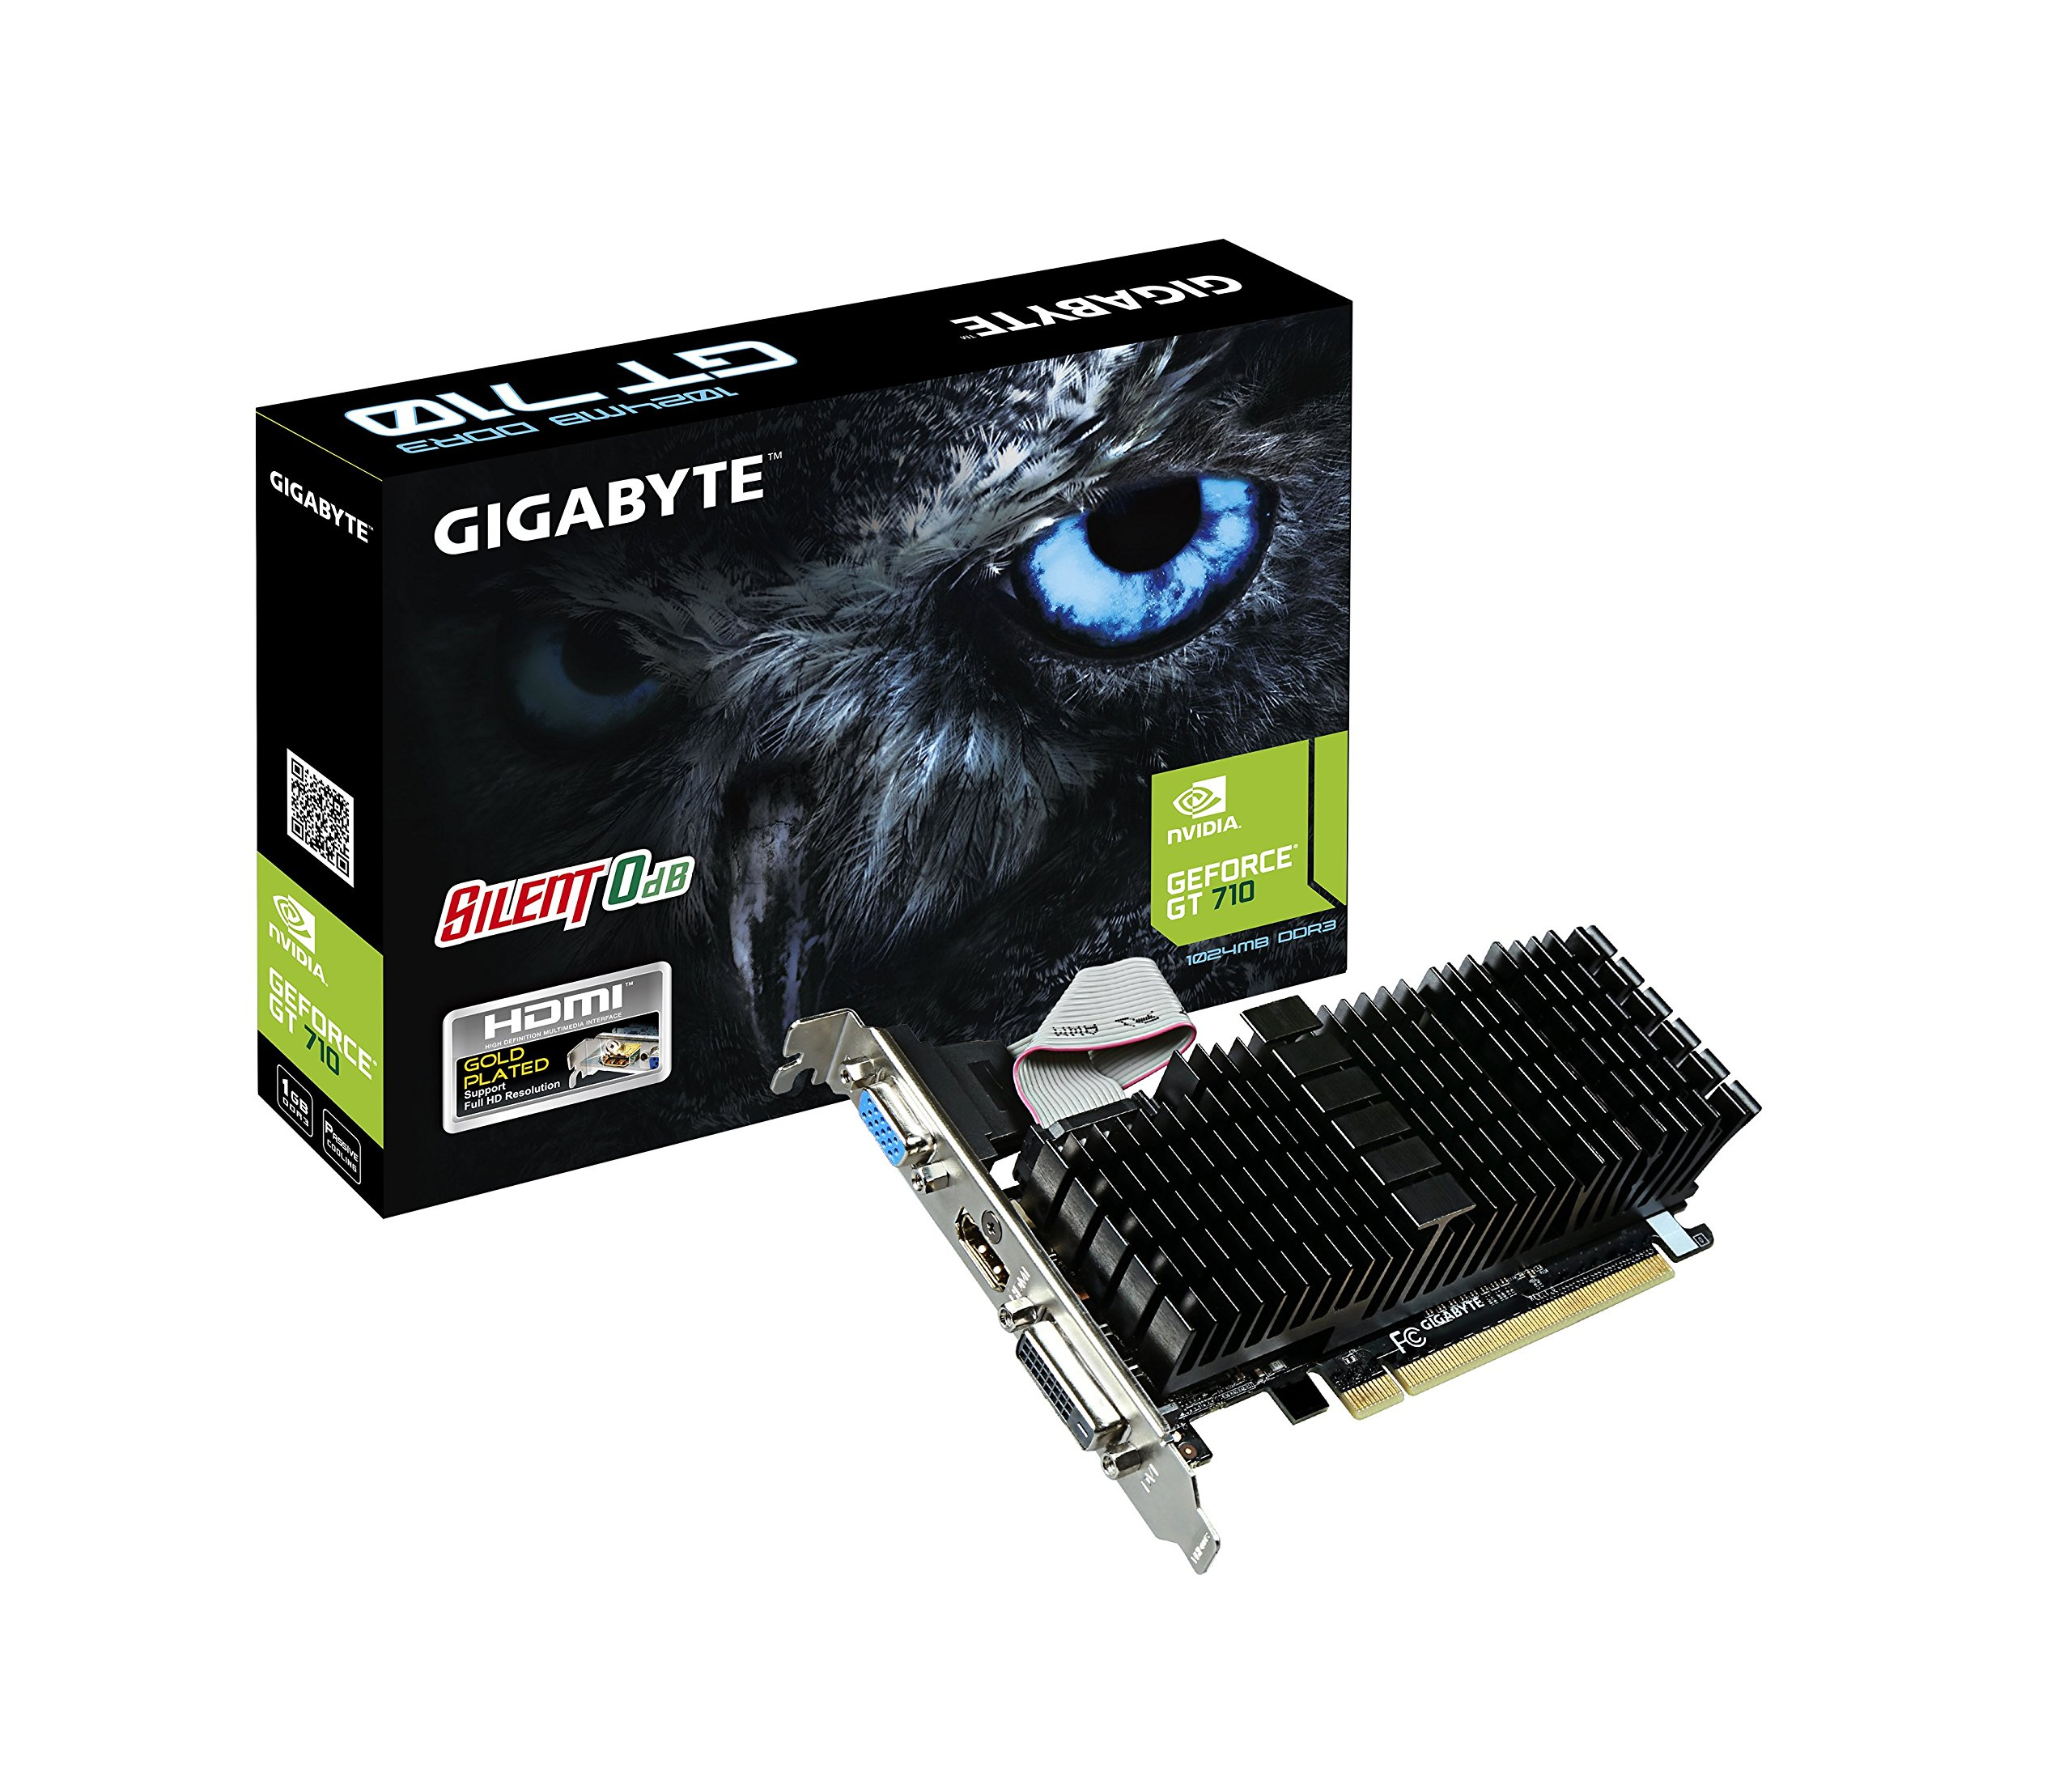 Gigabyte GeForce GT 710 1GB Low Profile GV-N710SL-1GL REV2.0 Graphic Cards by Gigabyte